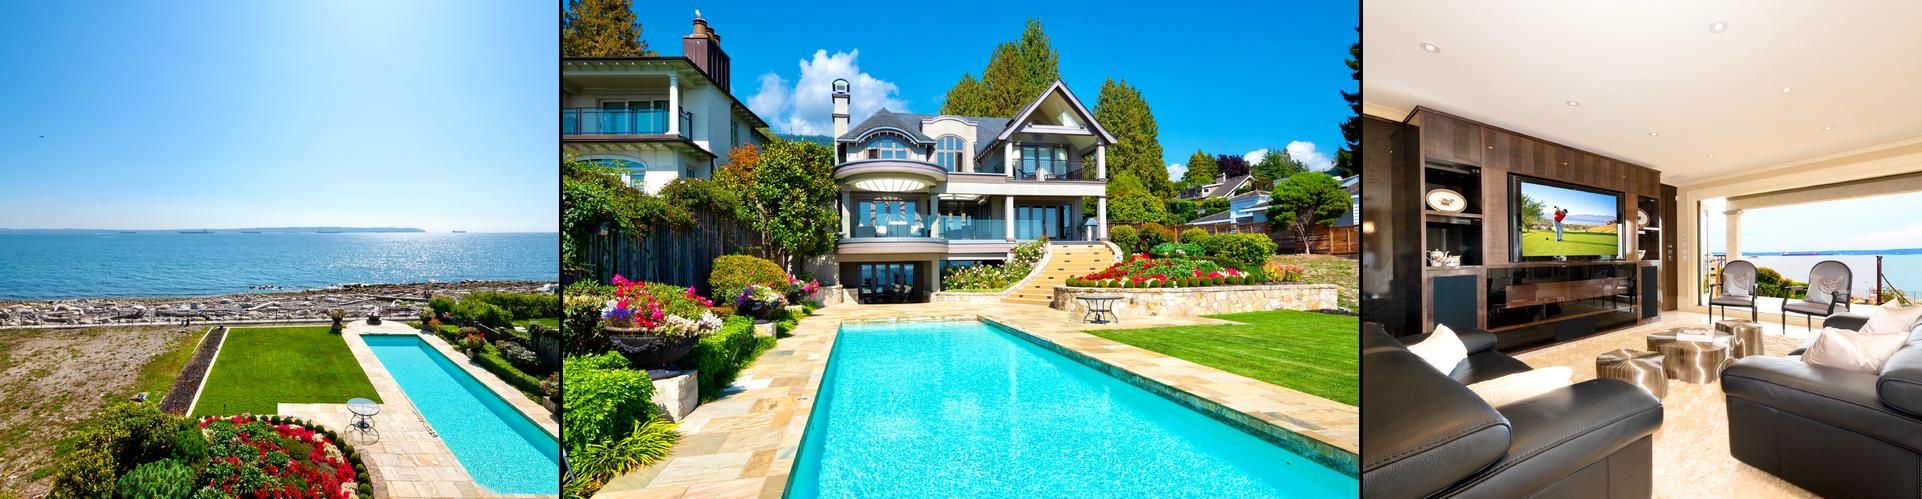 Luxury West Vancouver Real Estate and Homes - Vancouver's Listings